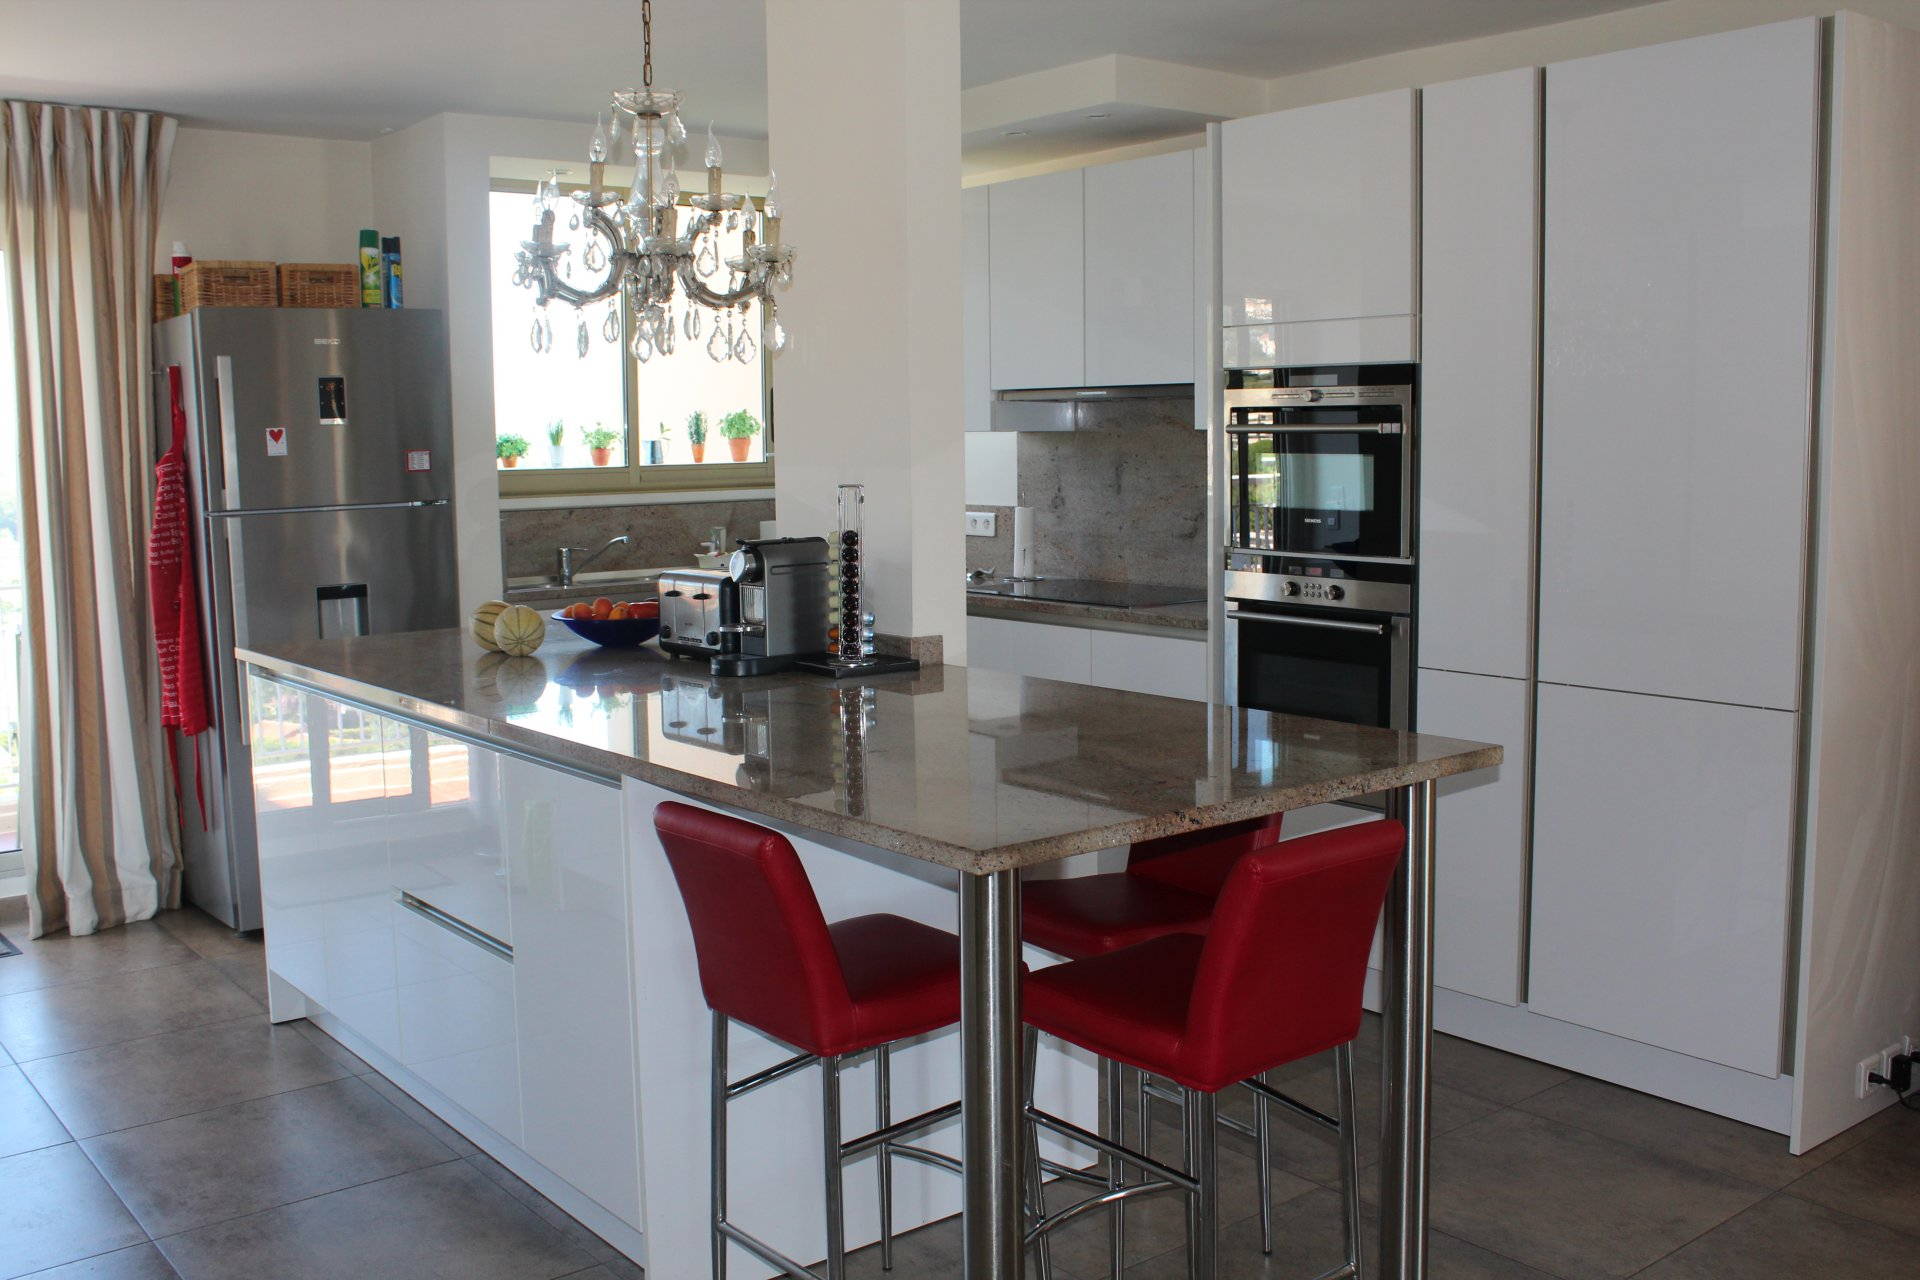 Stainless steel, chandelier, kitchen bar, kitchen island